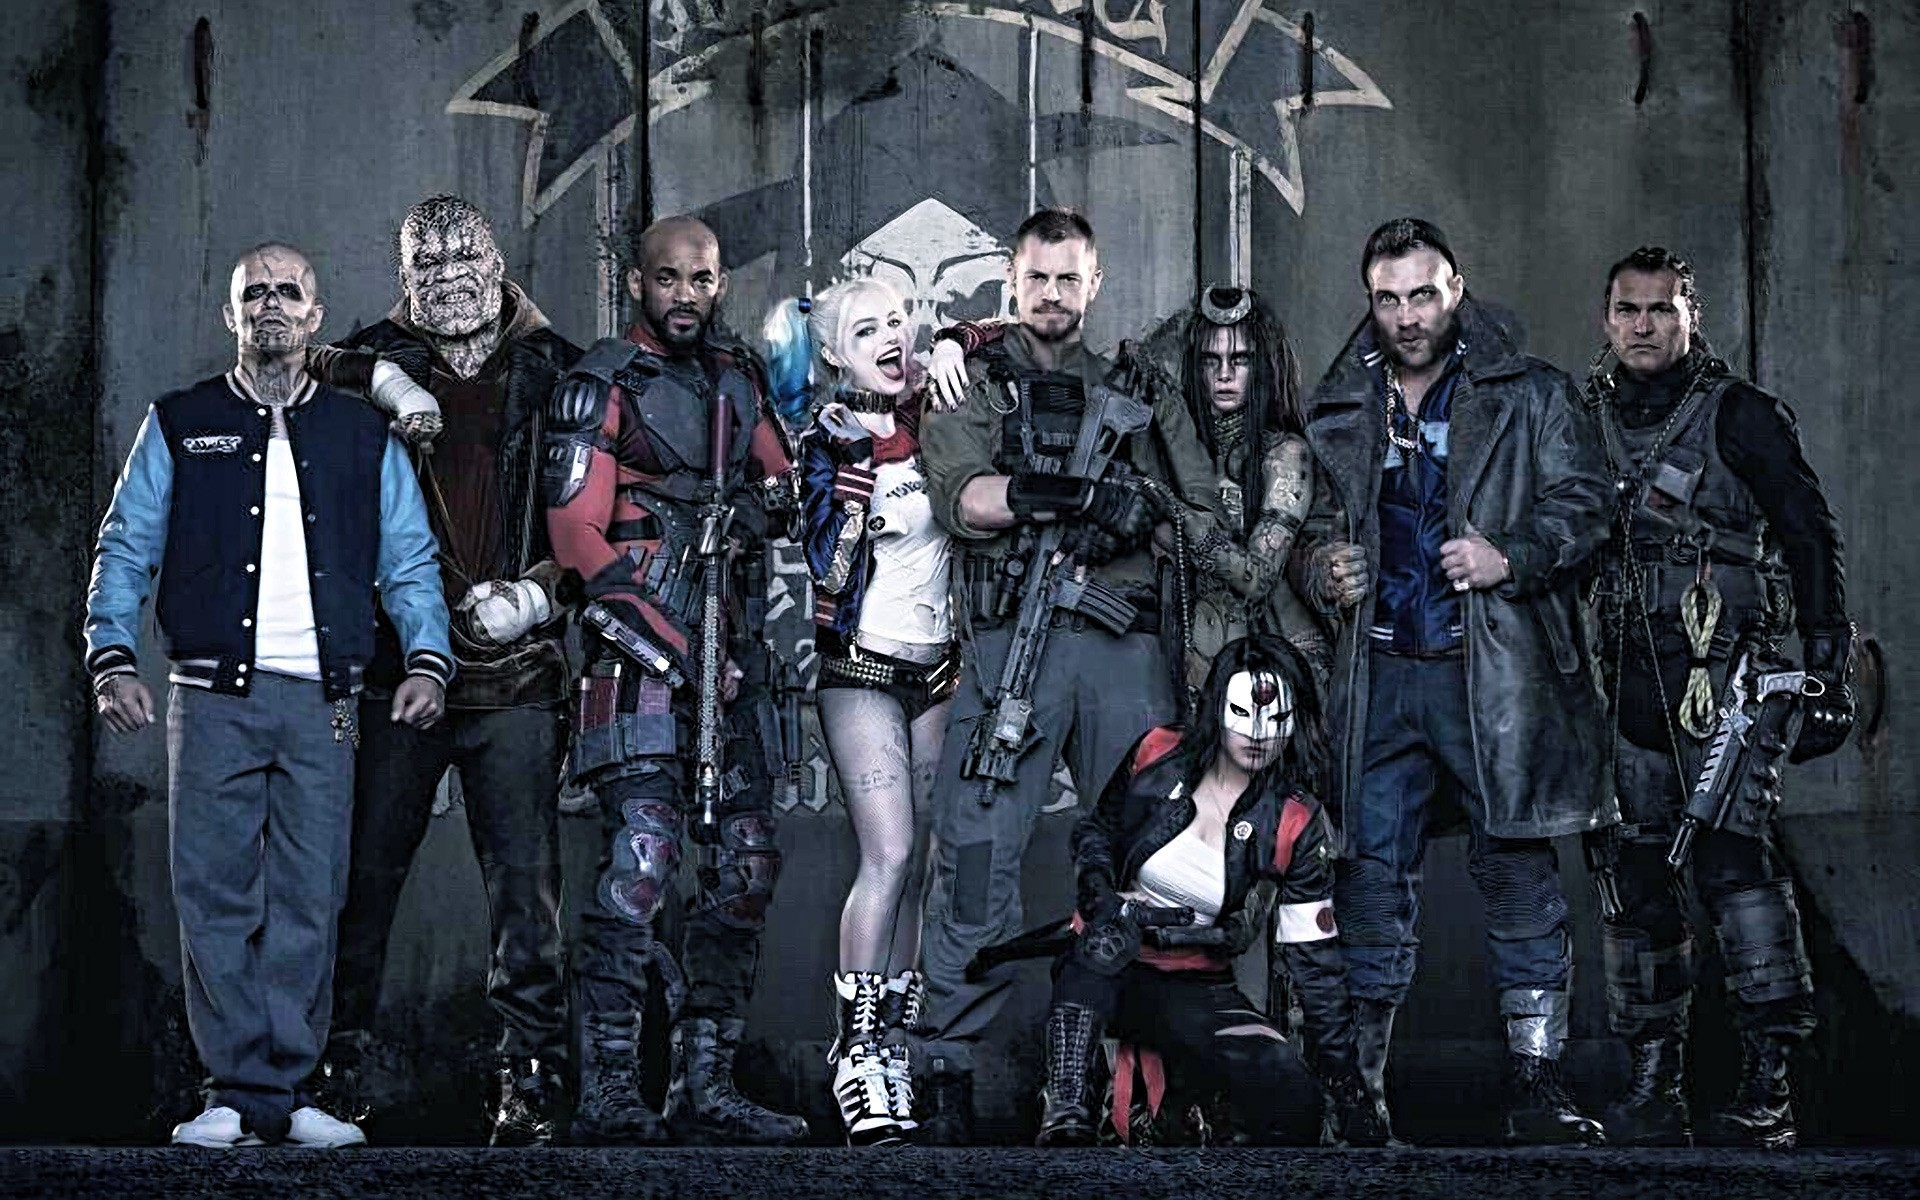 suicide squad movie wallpaper  Suicide Squad HD Wallpaper | Background Image | 1920x1200 | ID ...